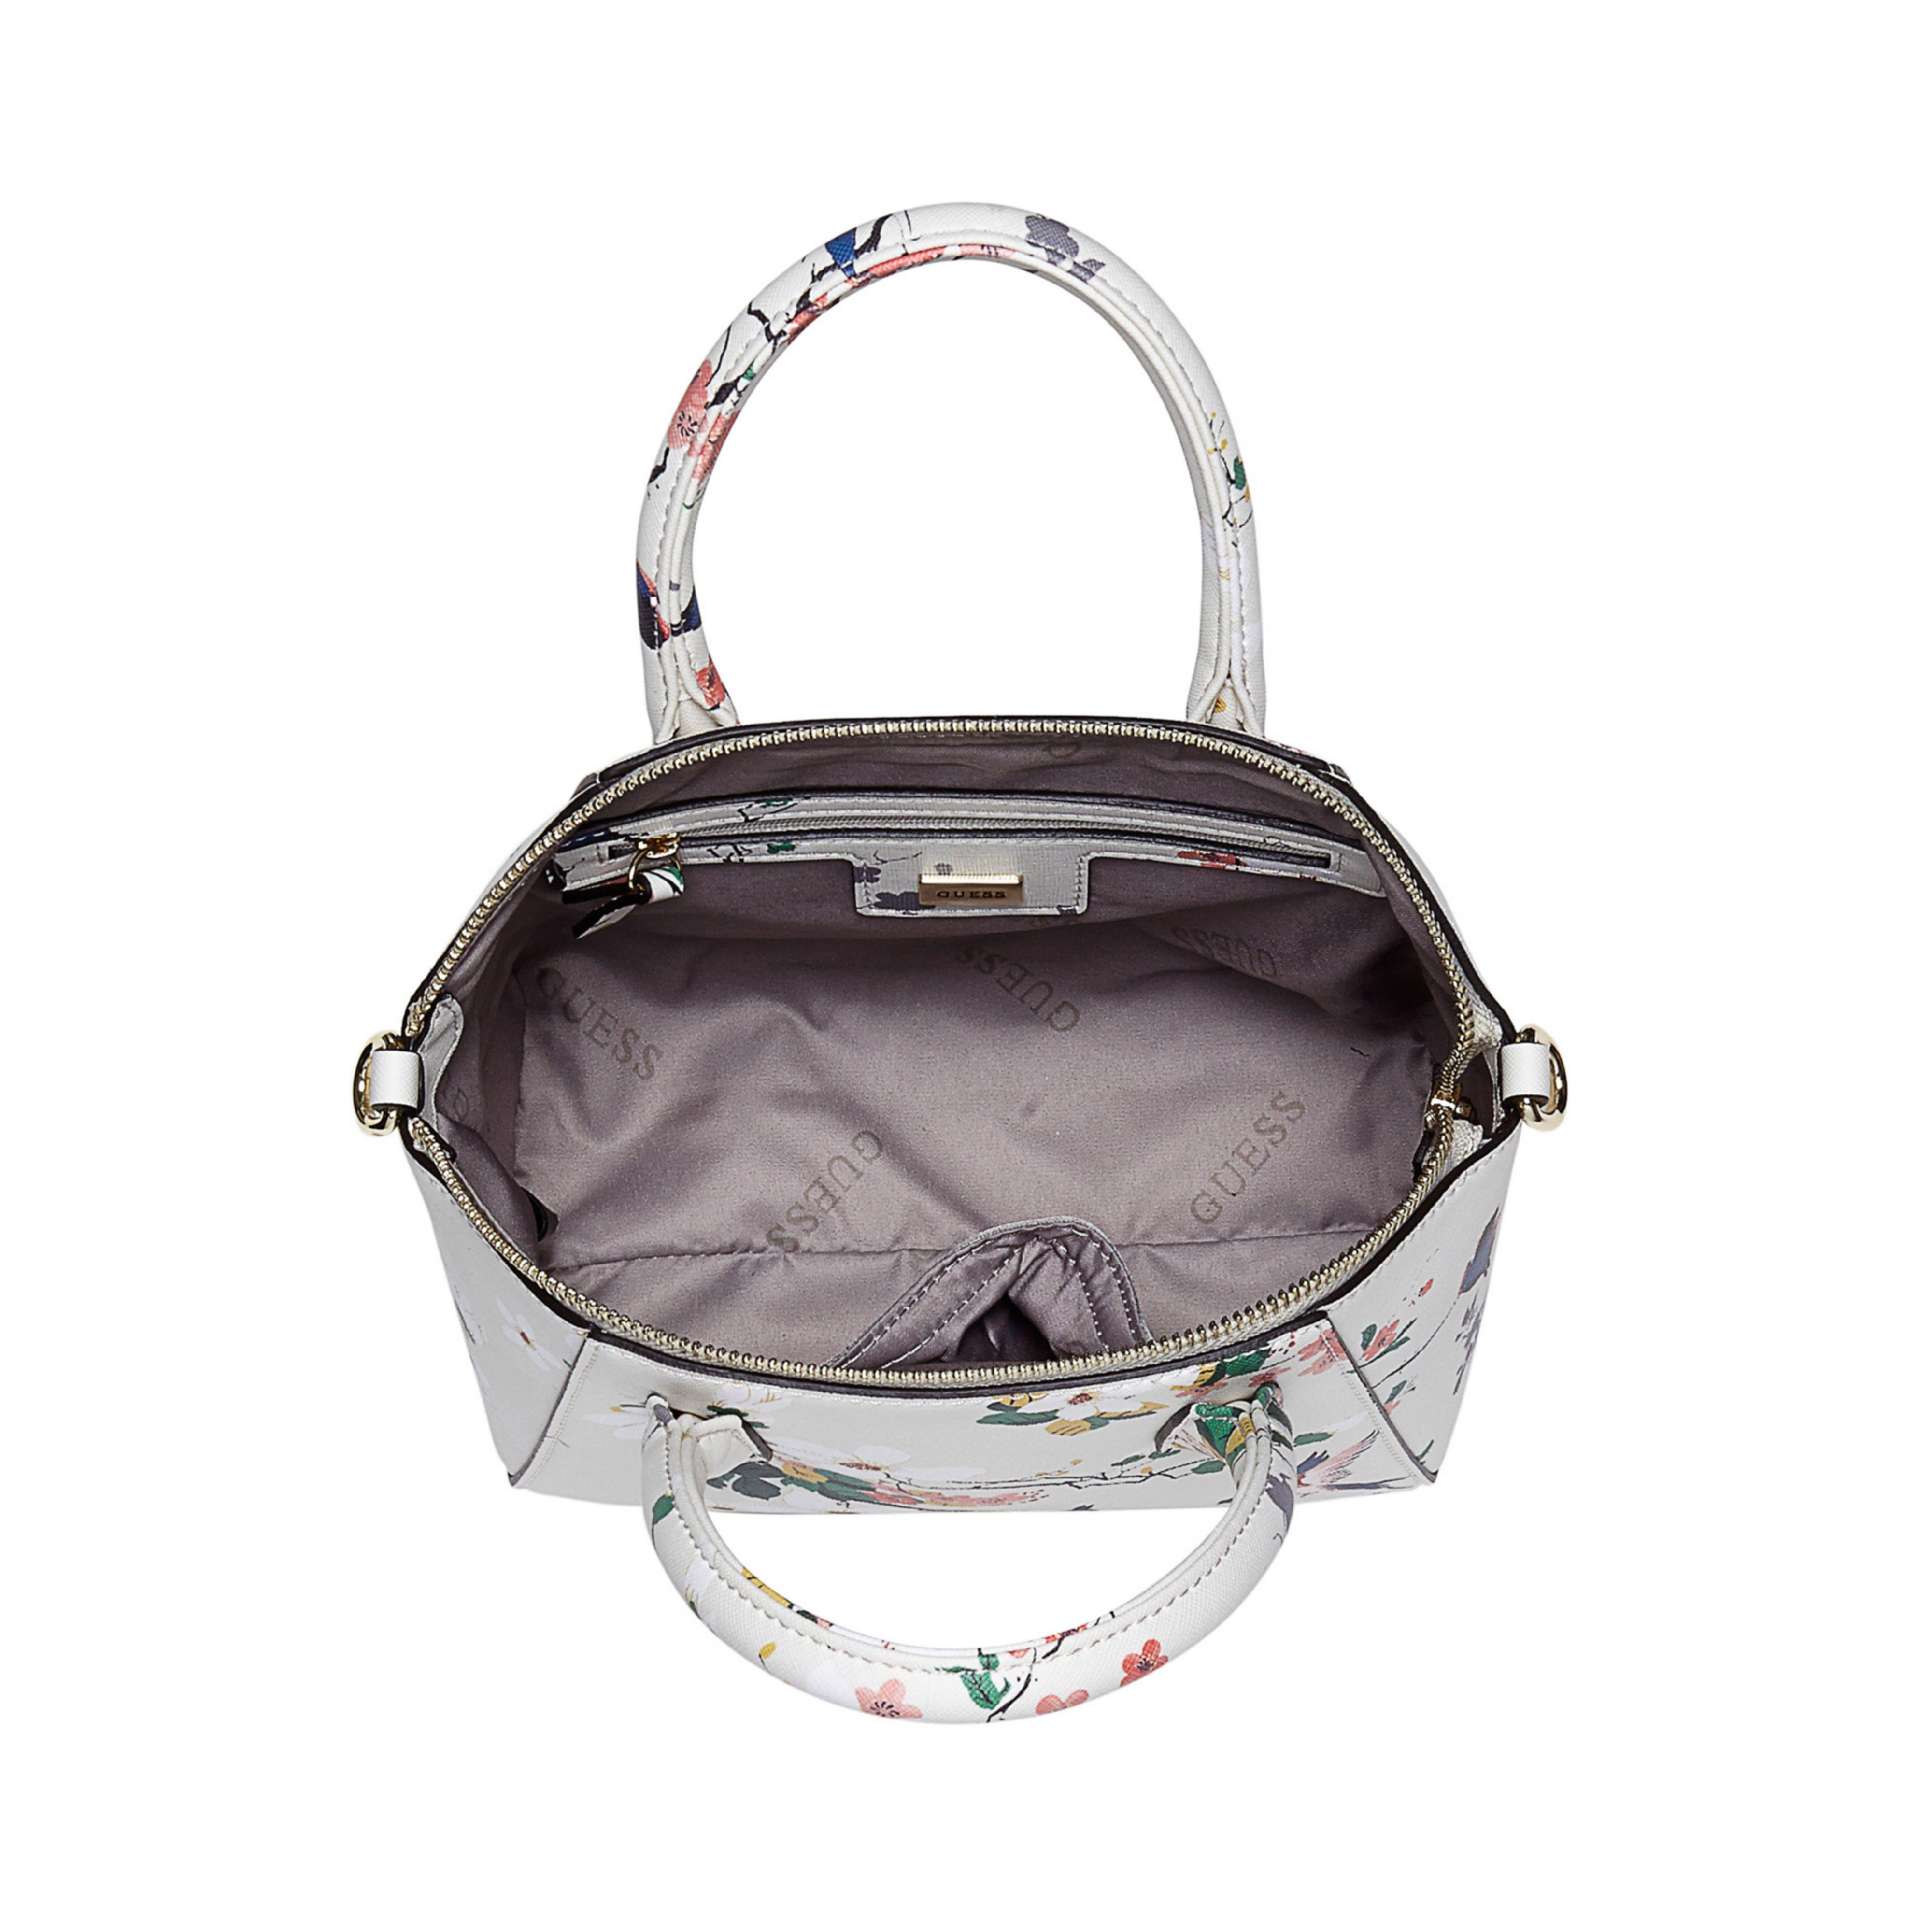 Guess Isabeau Small Floral Handbag In White | Lyst